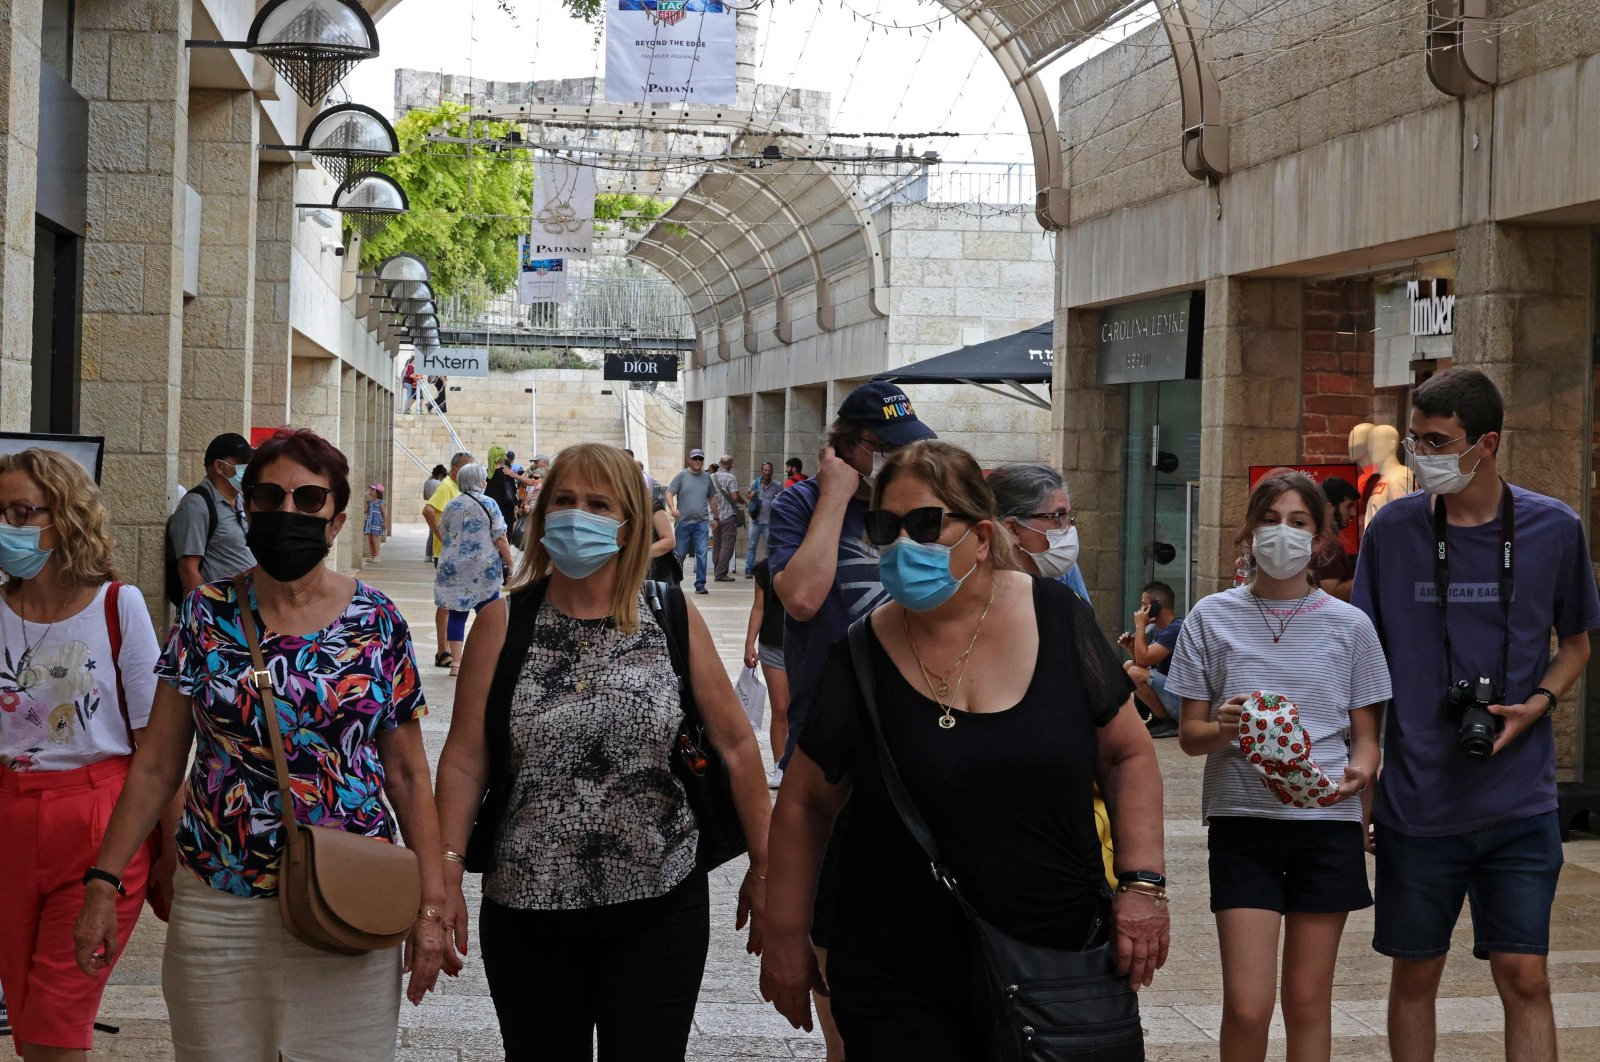 People wear masks against the coronavirus as they walk at a market in Jerusalem, Israel, Aug. 11, 2021. (AFP Photo)